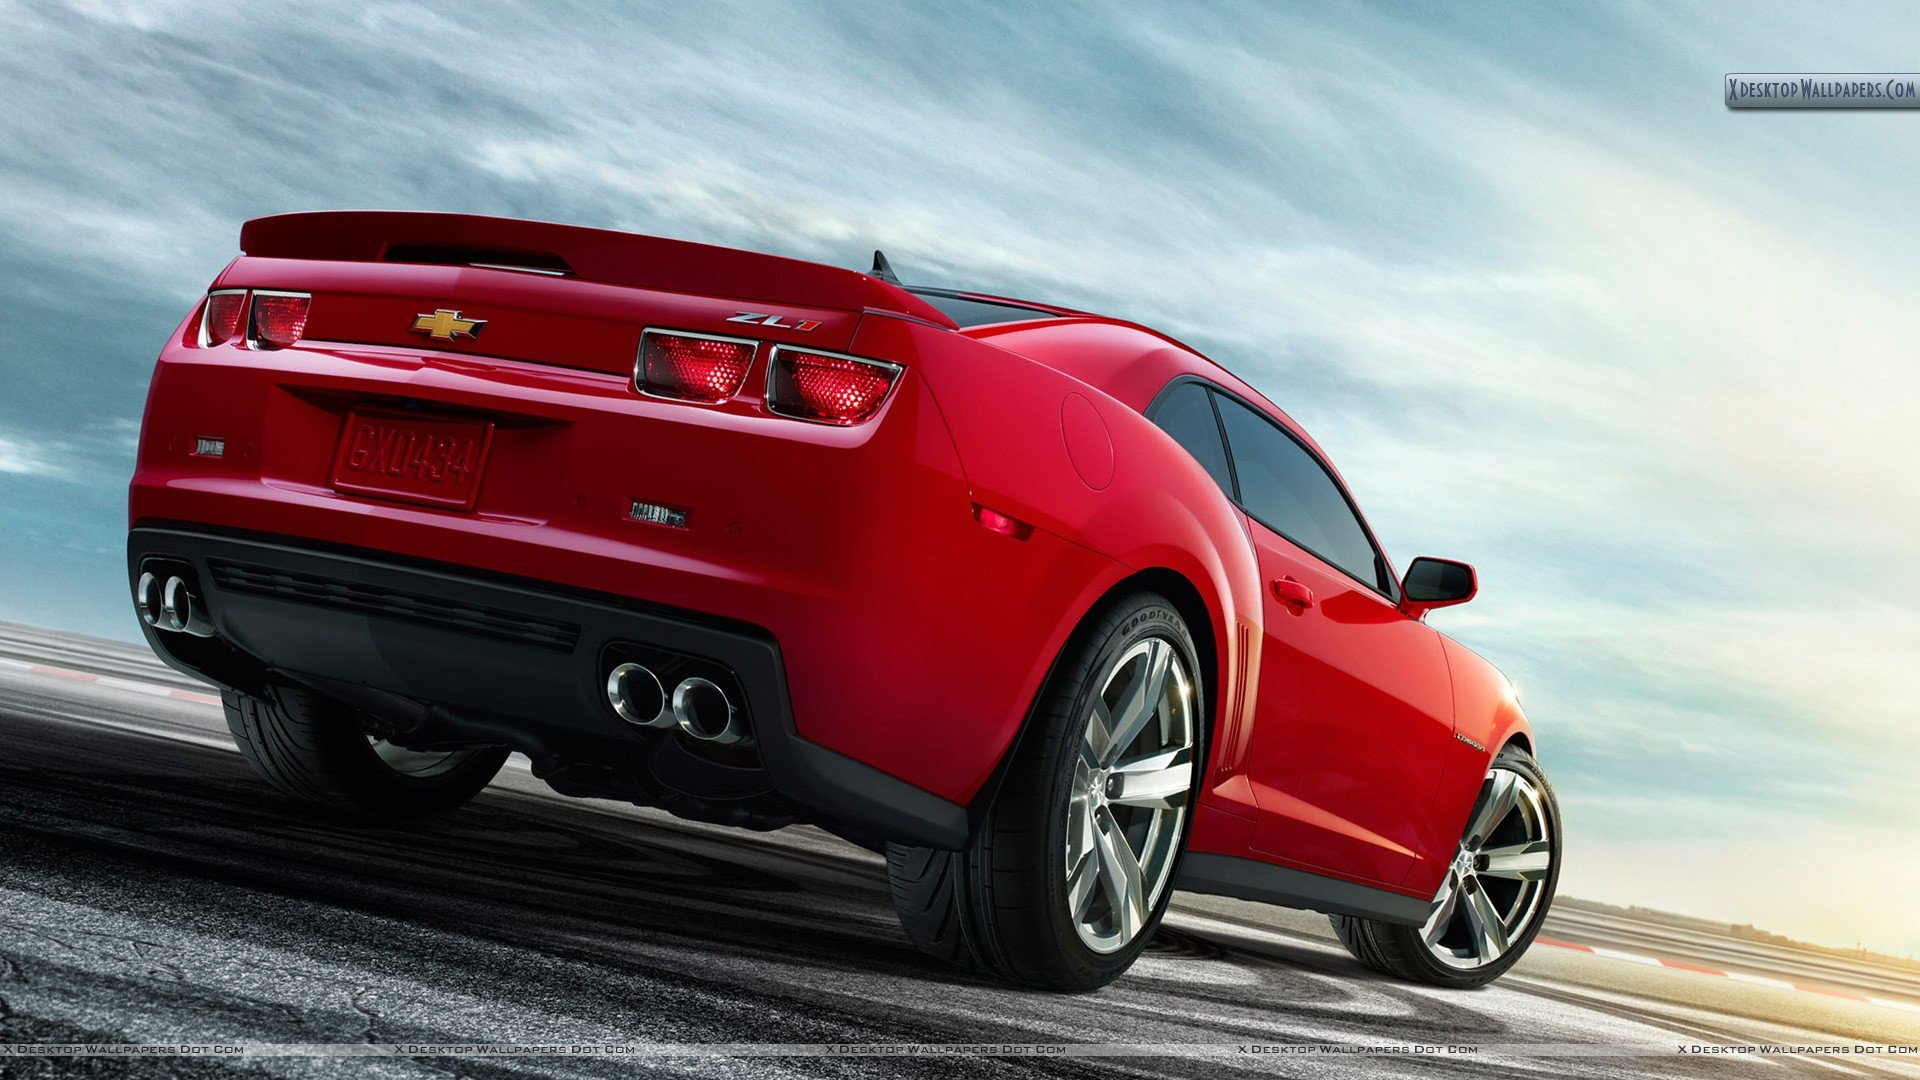 2012 chevrolet camaro zl1 wallpaper 1280x960 2016 Camaro dot com 1920x1080